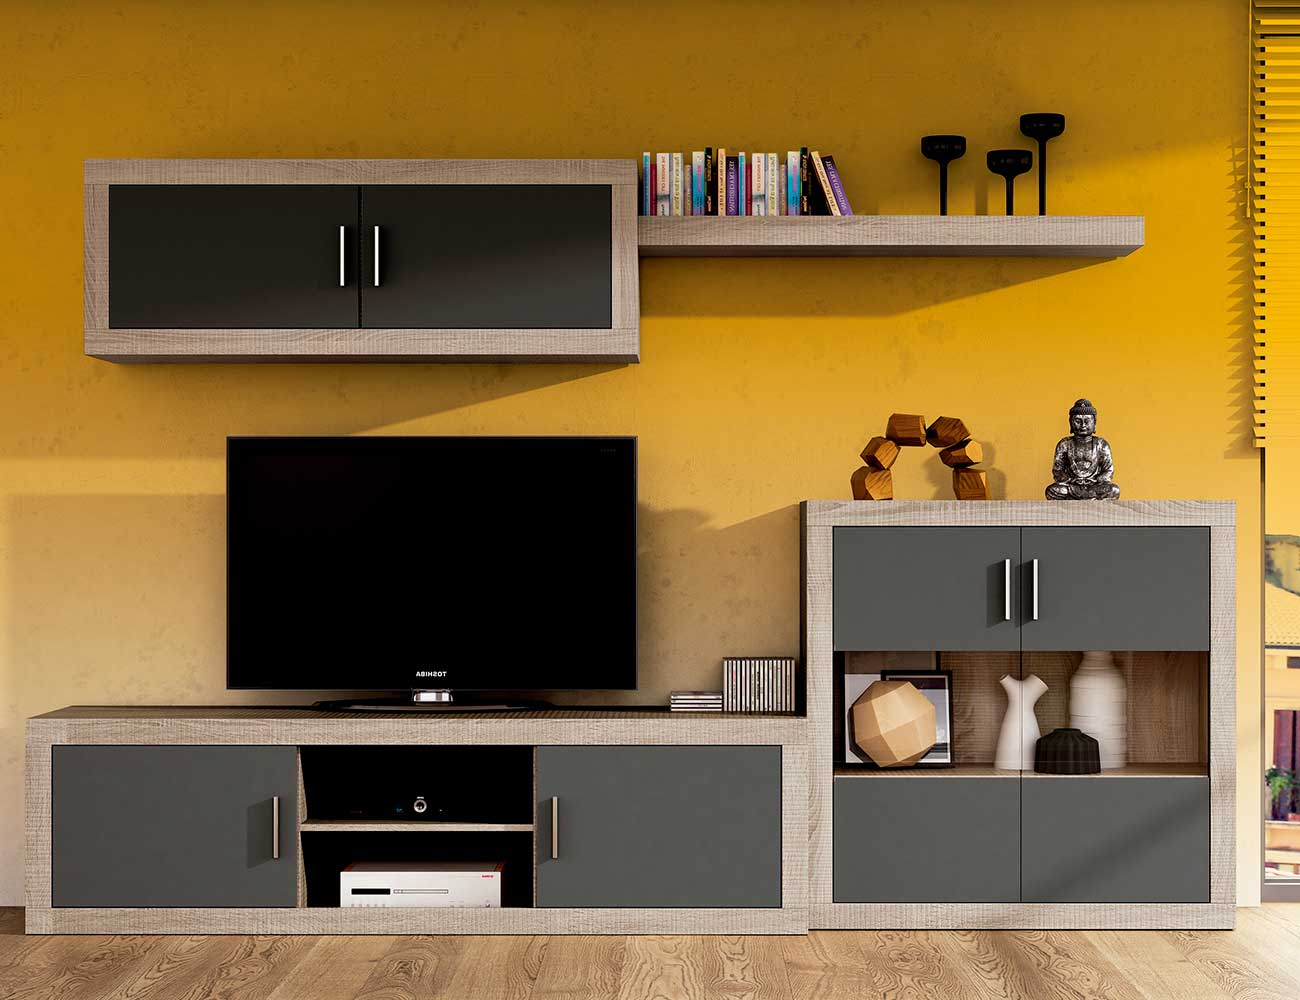 Mueble salon moderno bodeguero cambrian grafito